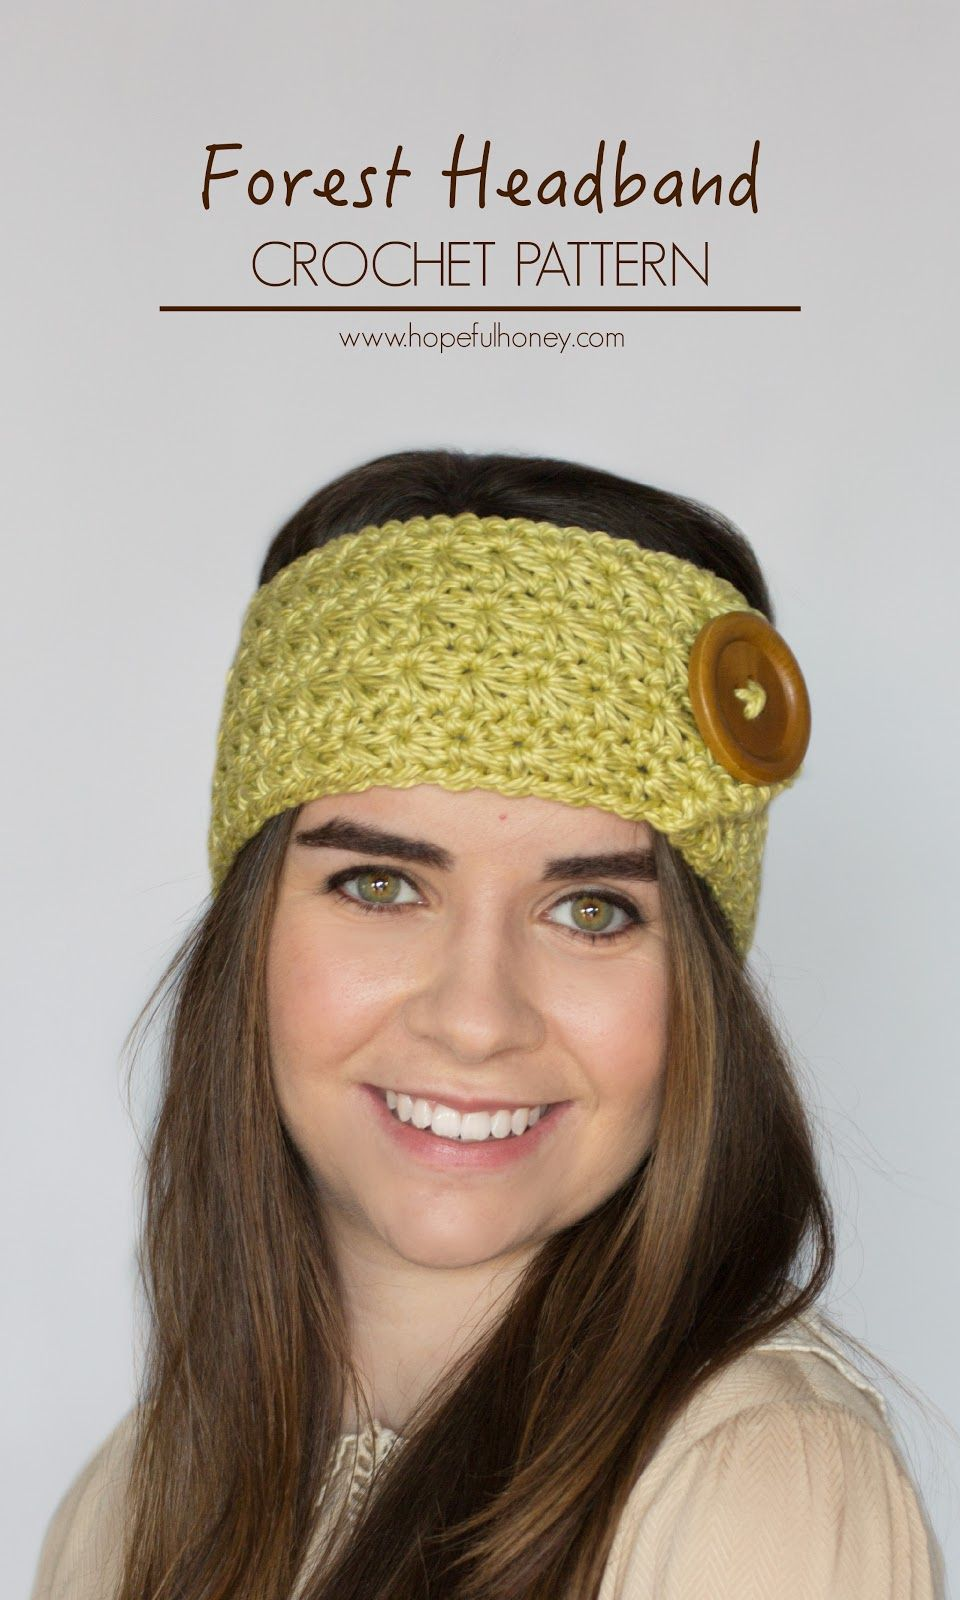 Enchanted Forest Headband Crochet Pattern | Häkelarbeiten ...